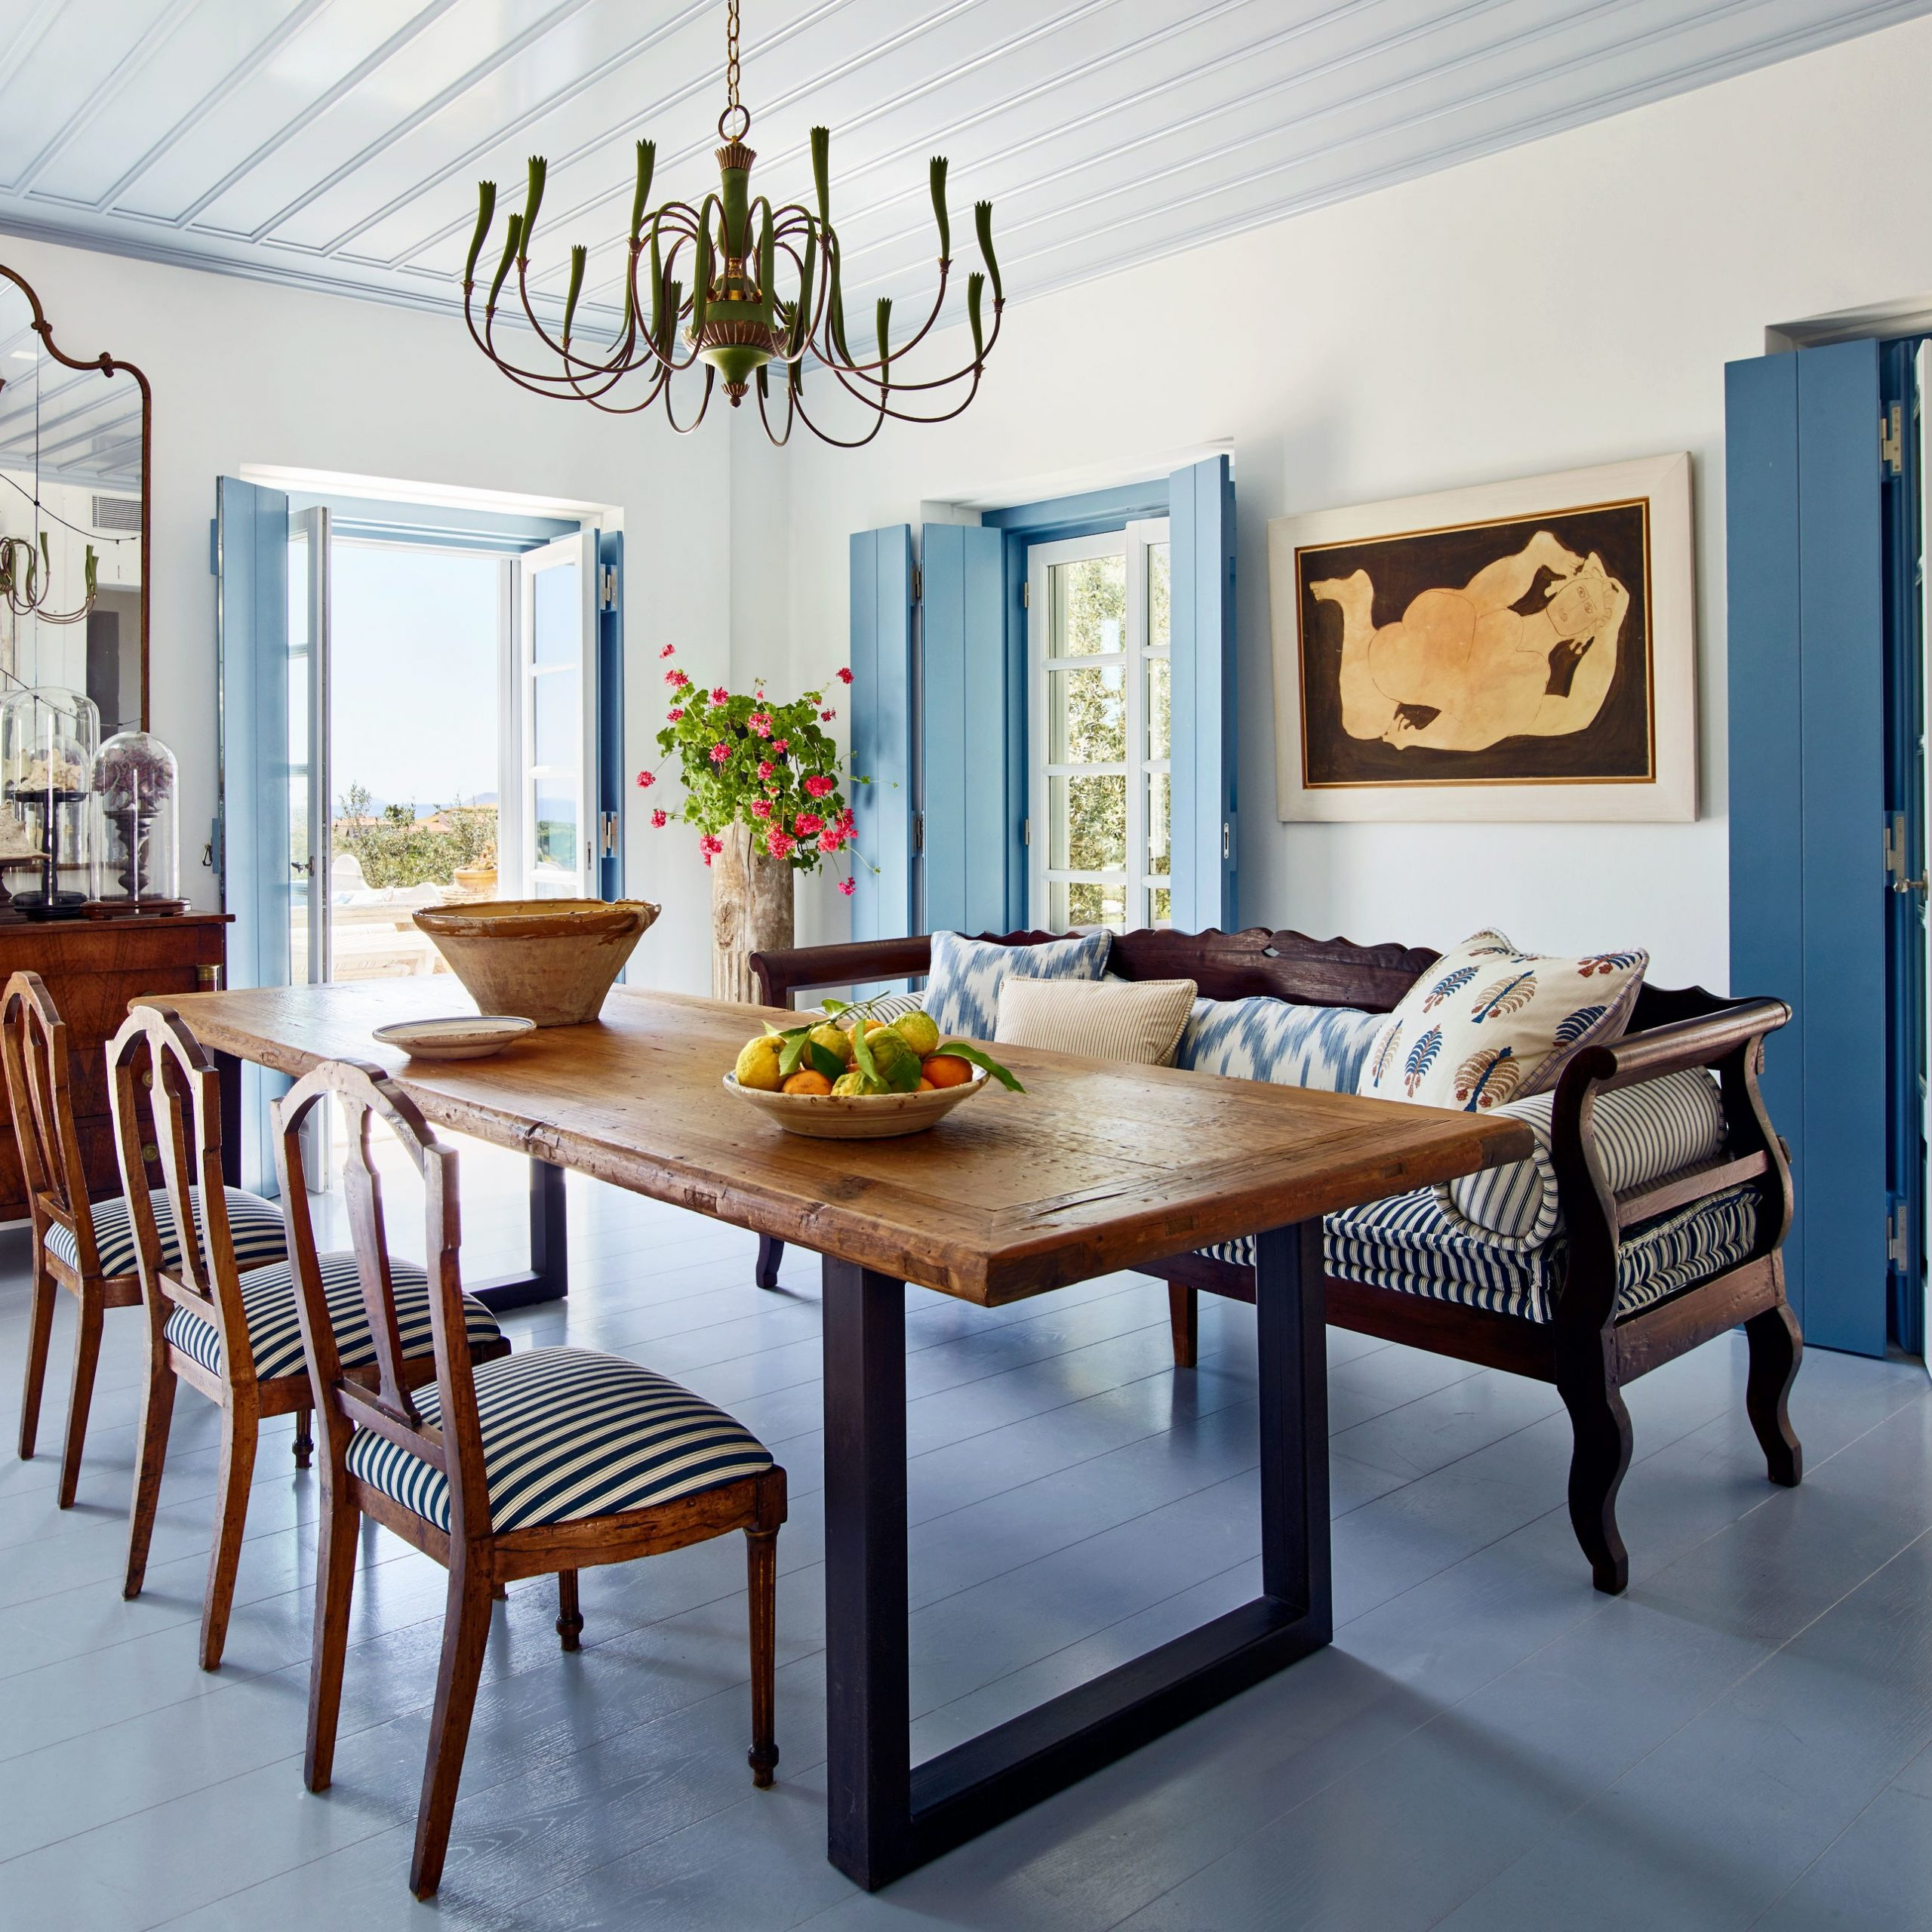 Widely Used Tips To Mix And Match Dining Room Chairs Successfully With Regard To Distressed Grey Finish Wood Classic Design Dining Tables (View 19 of 25)